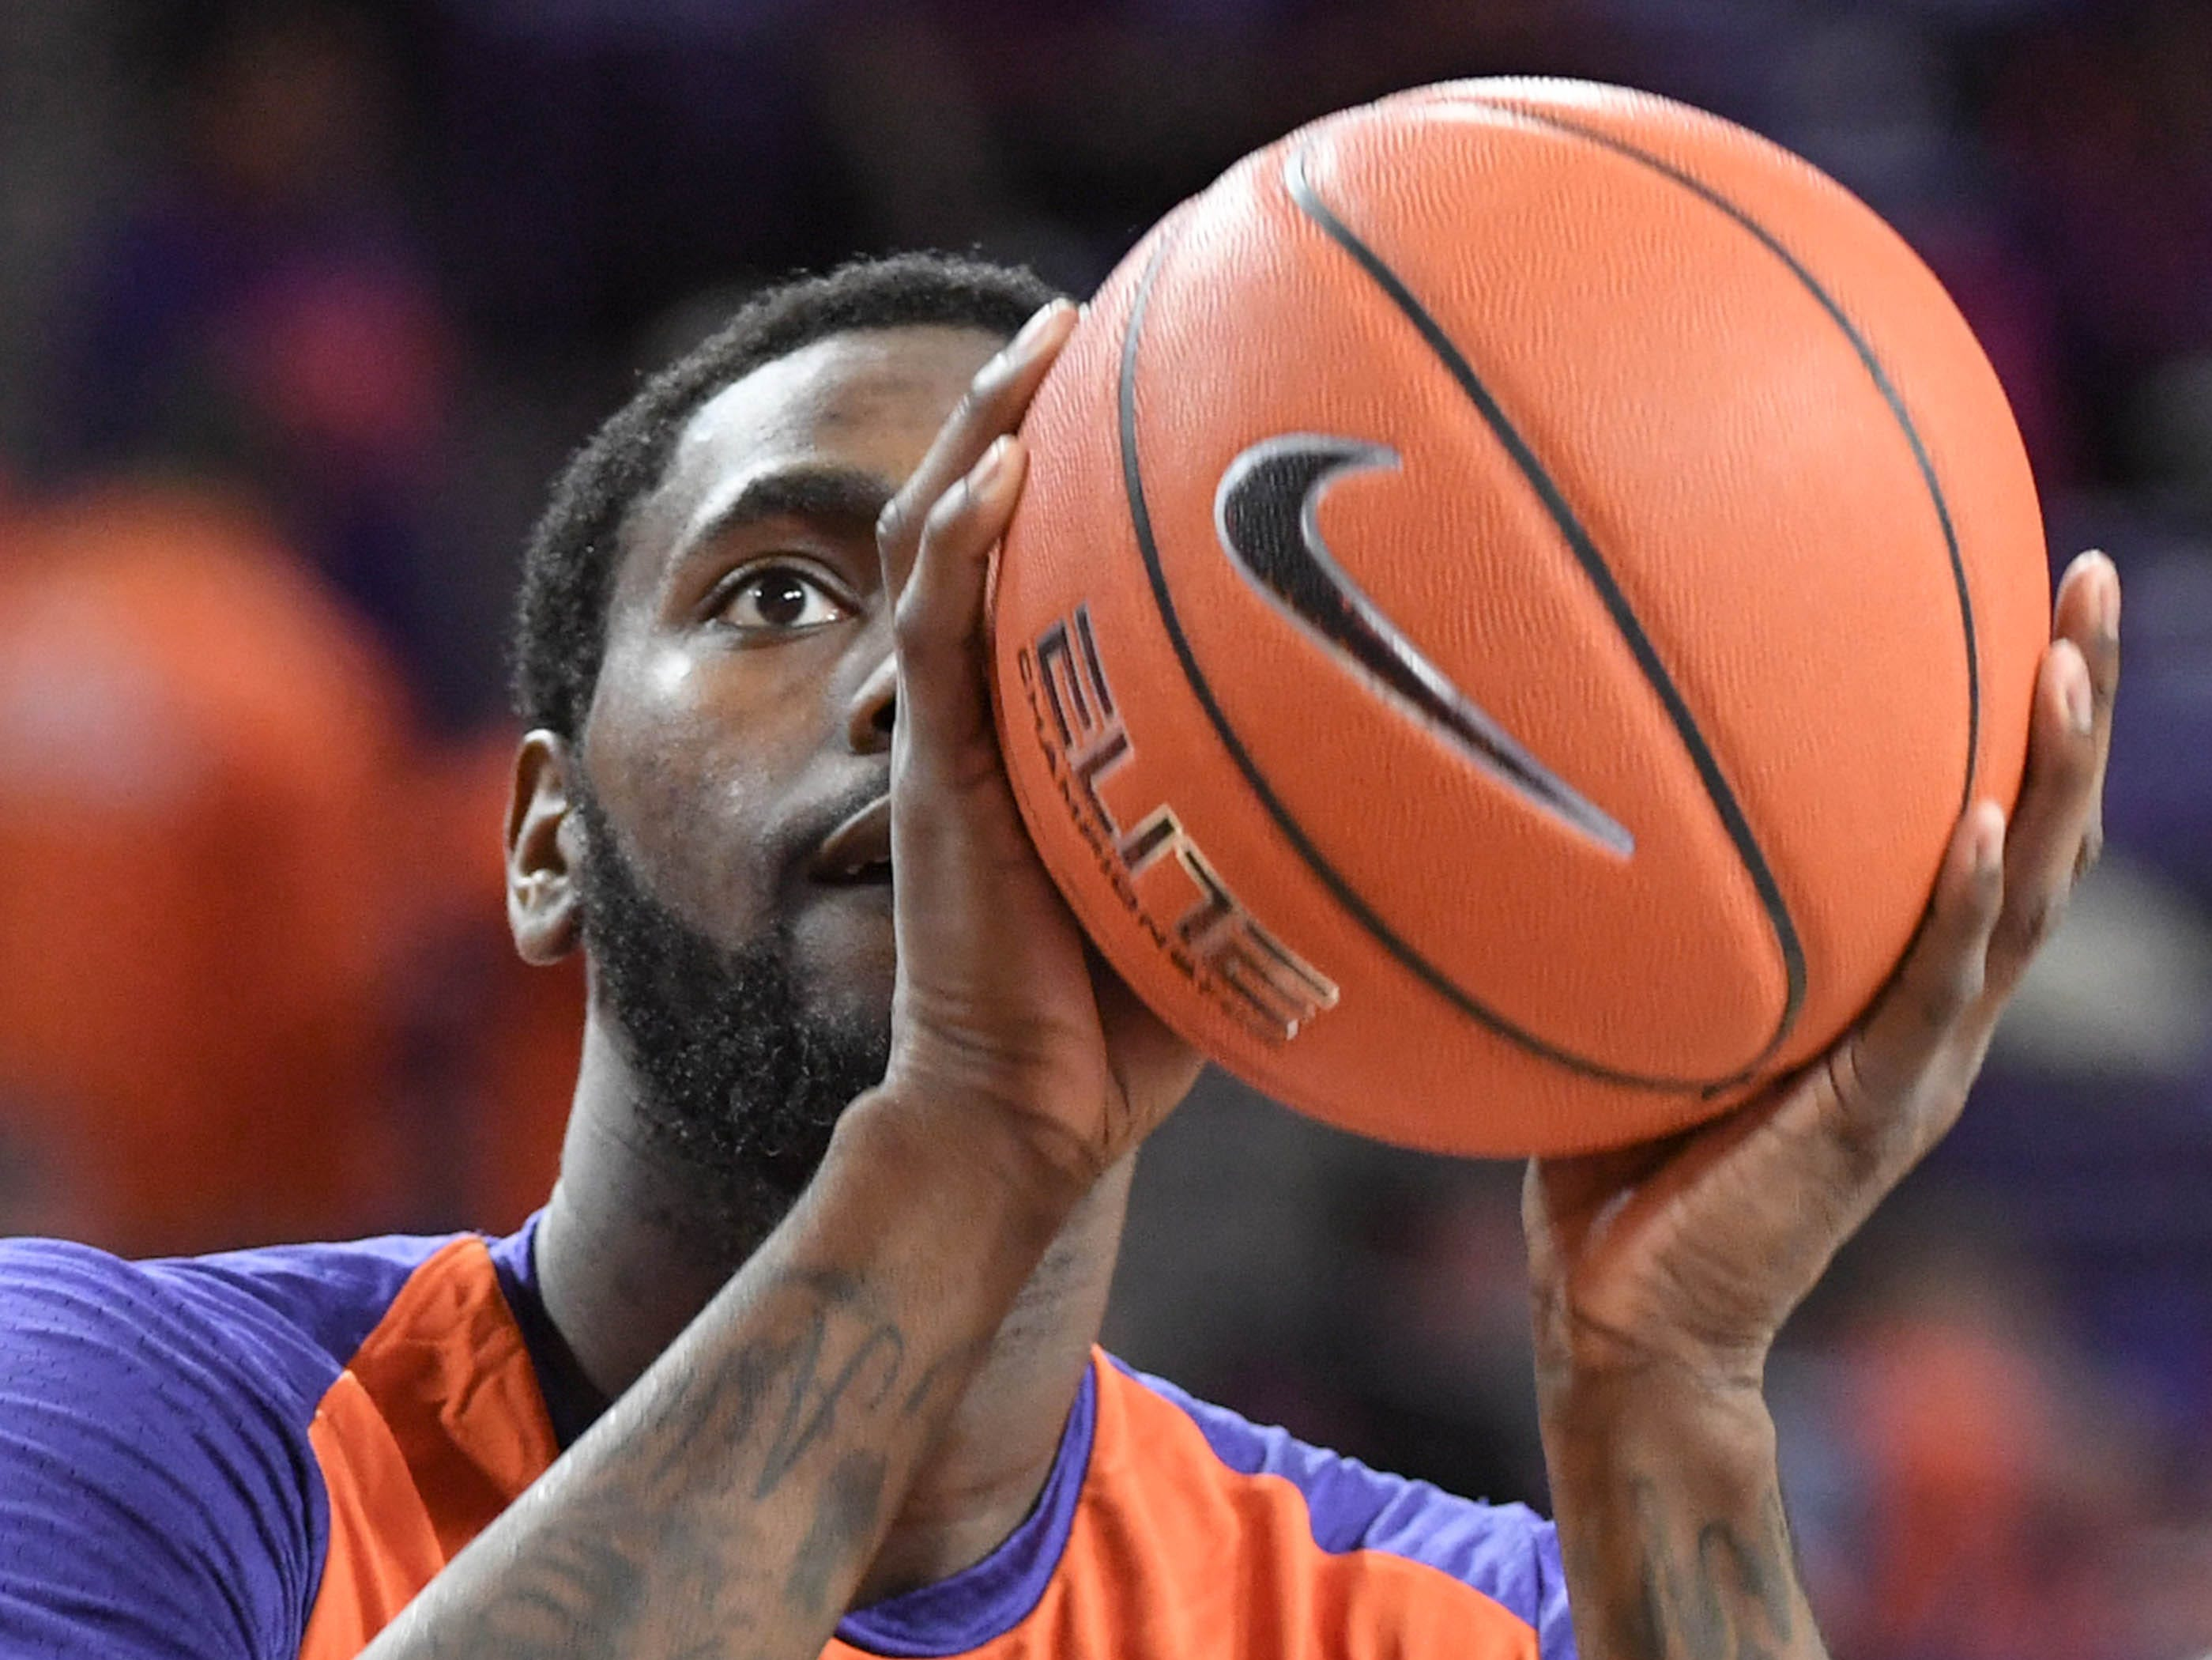 Clemson forward Elijah Thomas (14) warms up before the game against Syracuse Saturday, March 9, 2019.